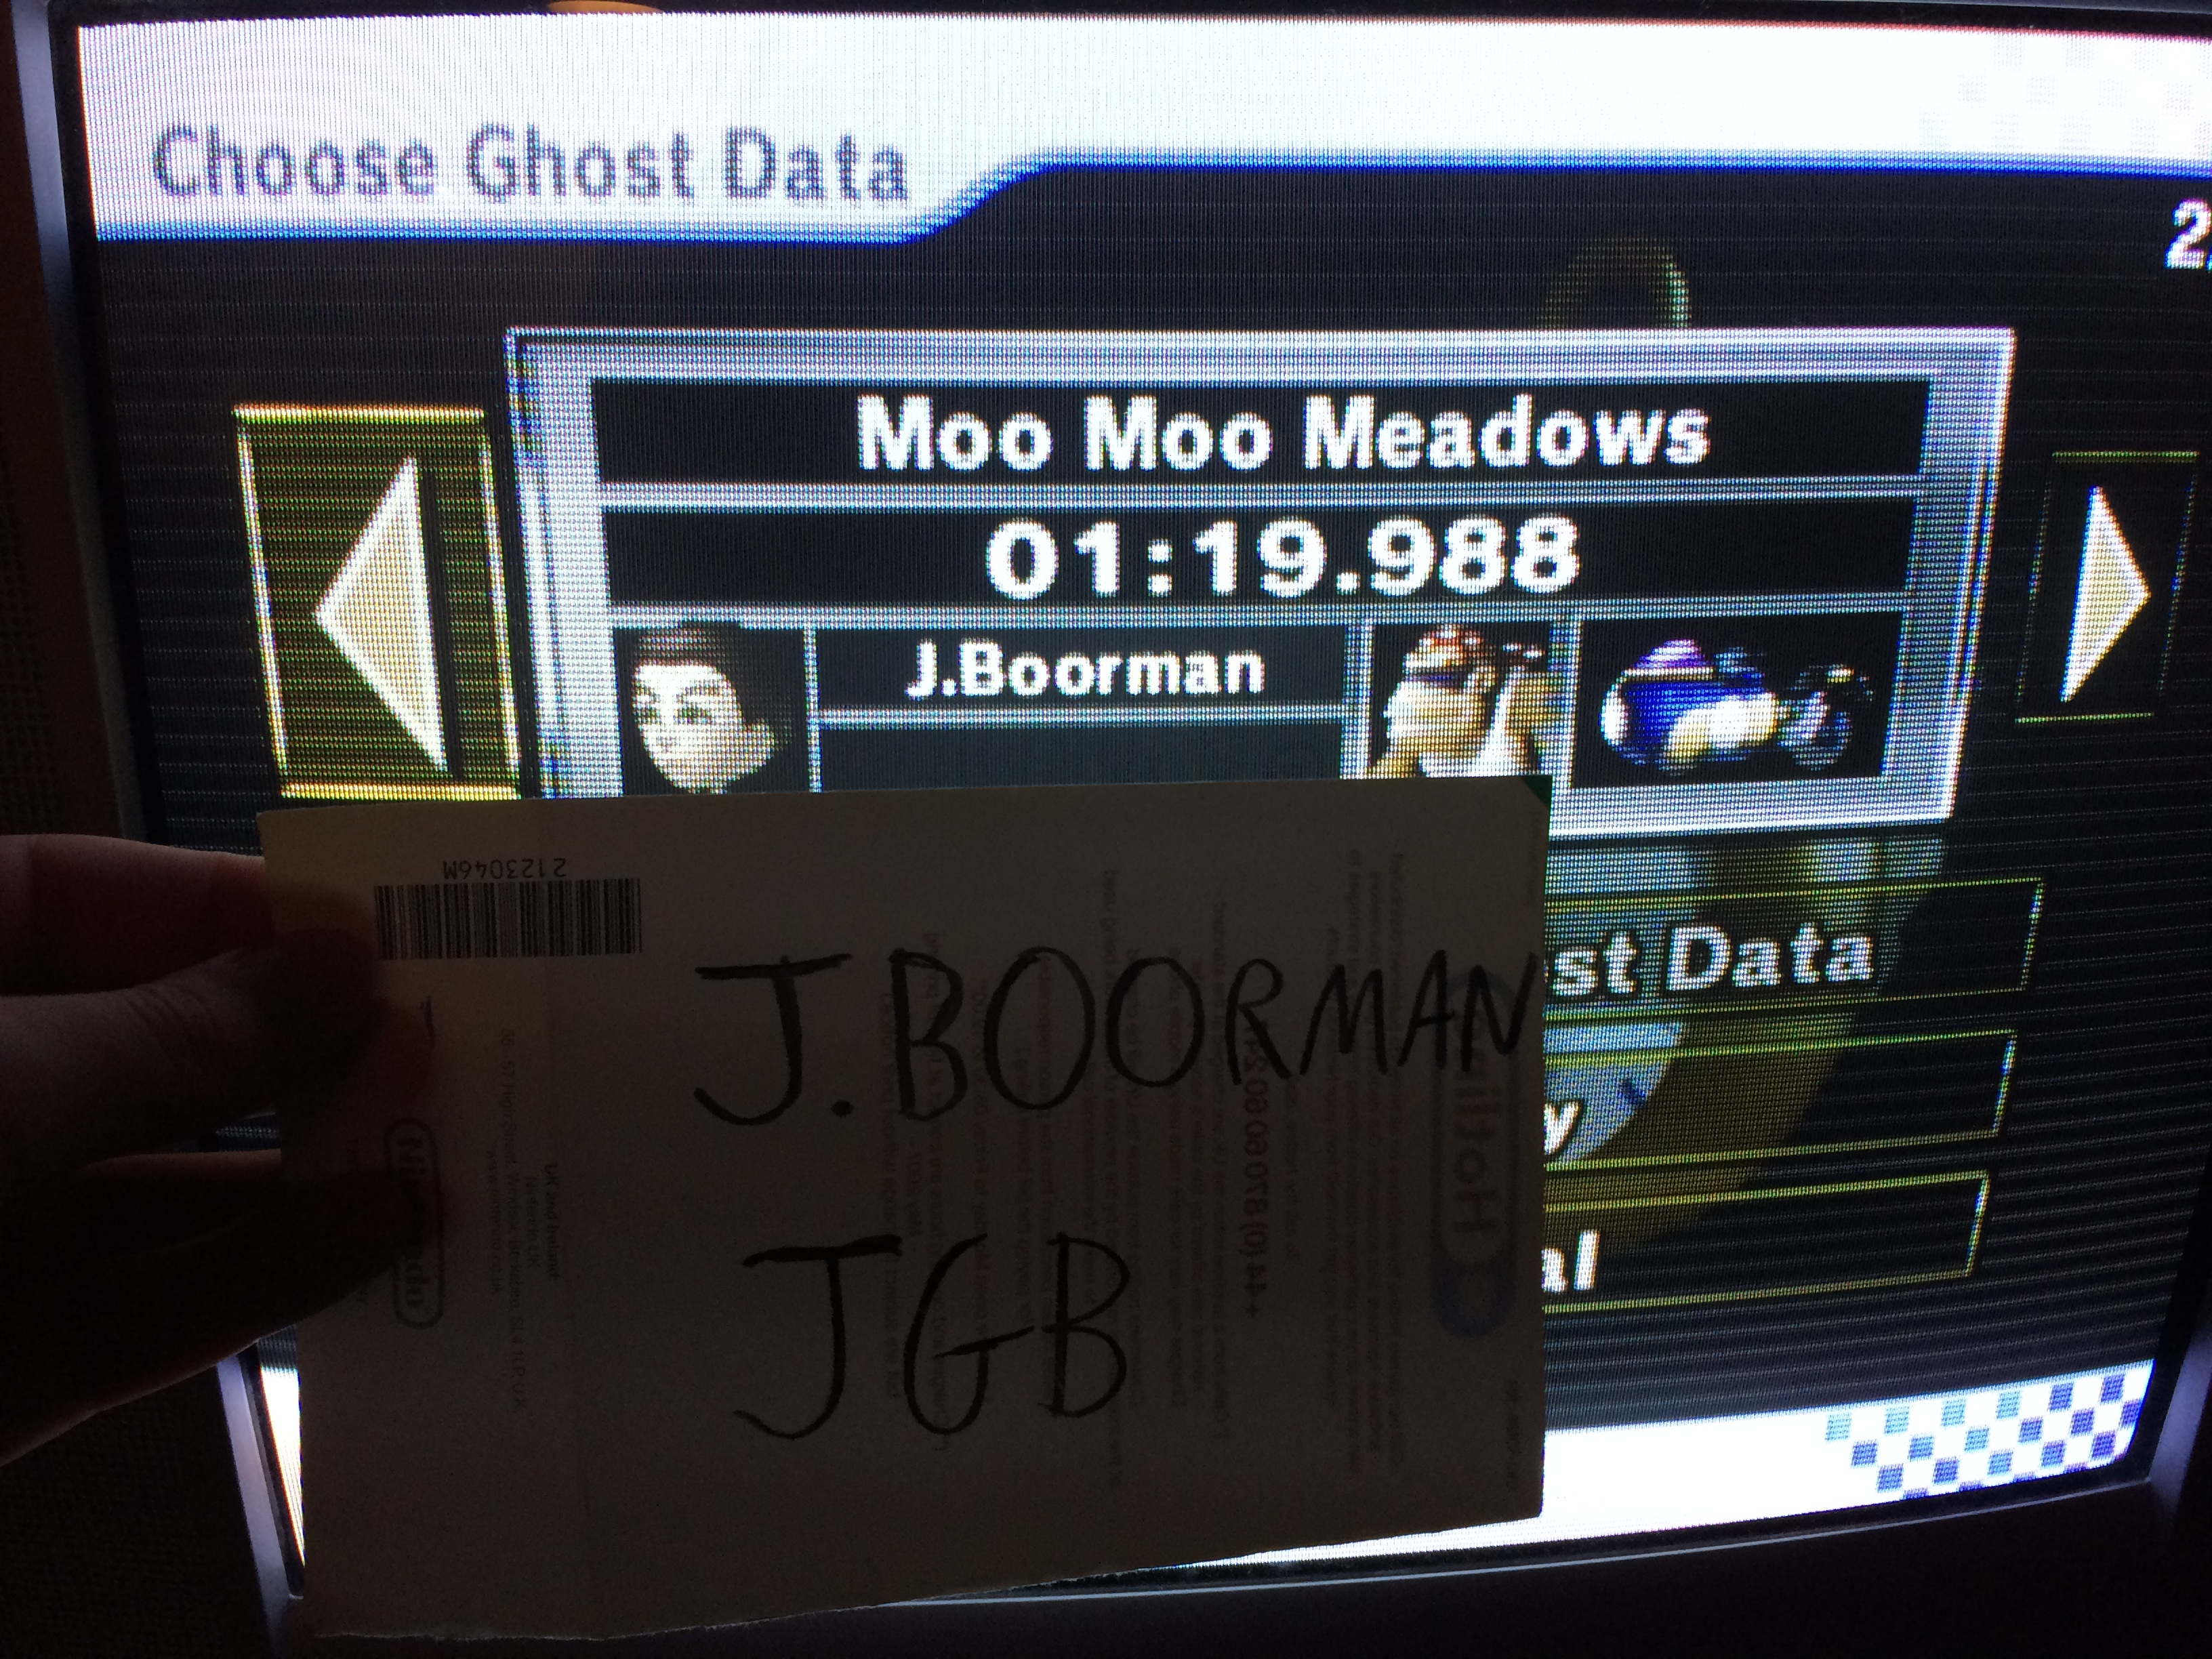 Mario Kart Wii: Time Trials: Moo Moo Meadows [Best Time] time of 0:01:19.988